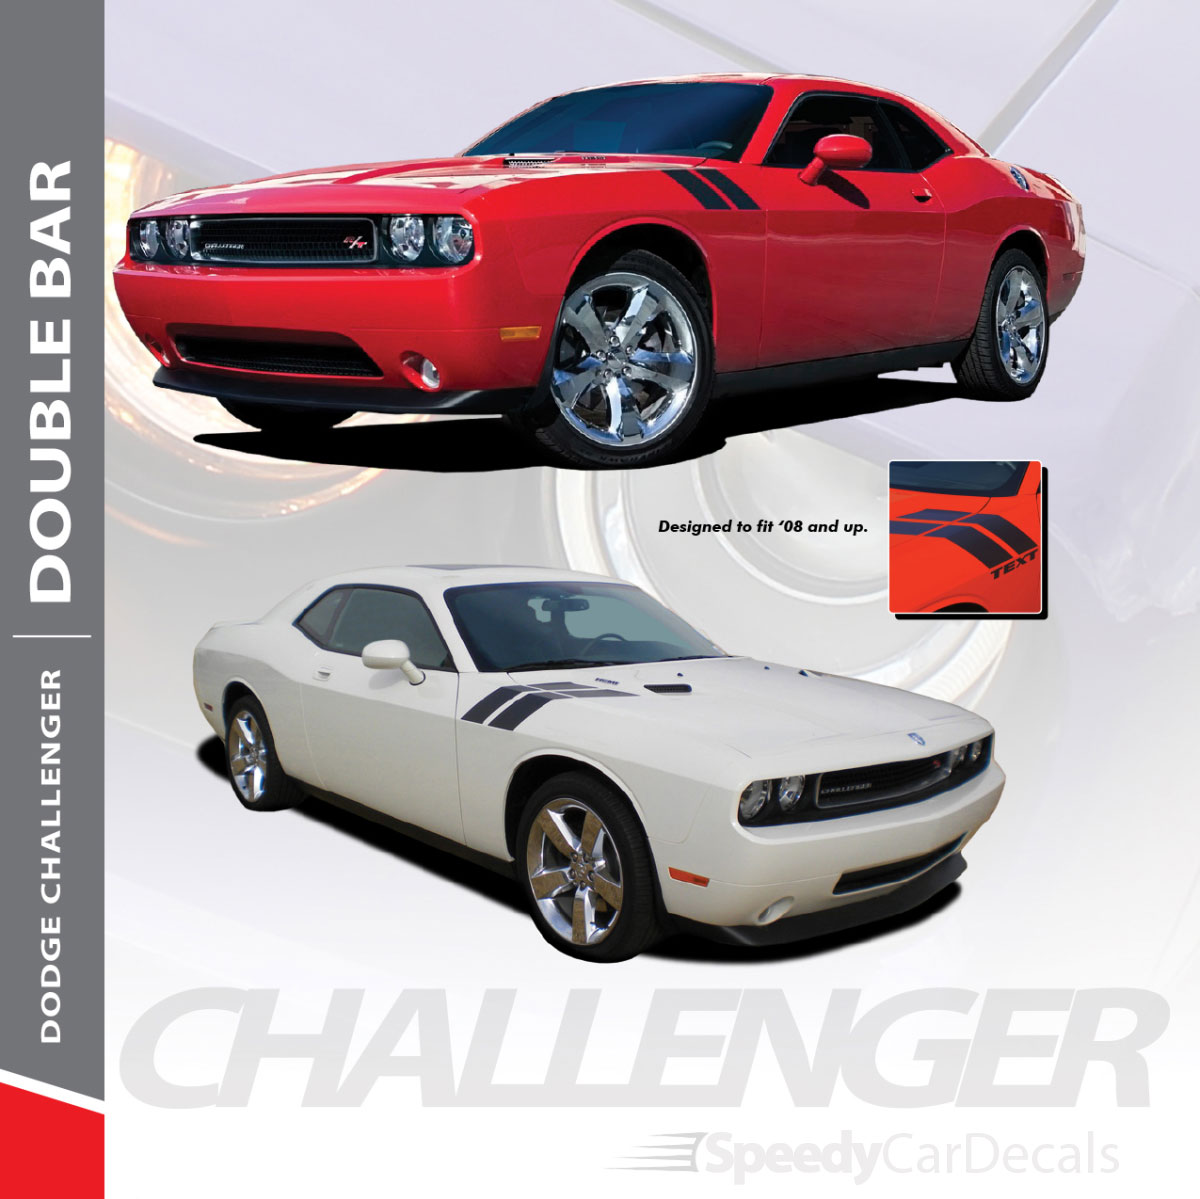 Challenger RT Decal 2008 2009 2010 2011 2012 2013 2014 2015 2016 2017 2018 2019